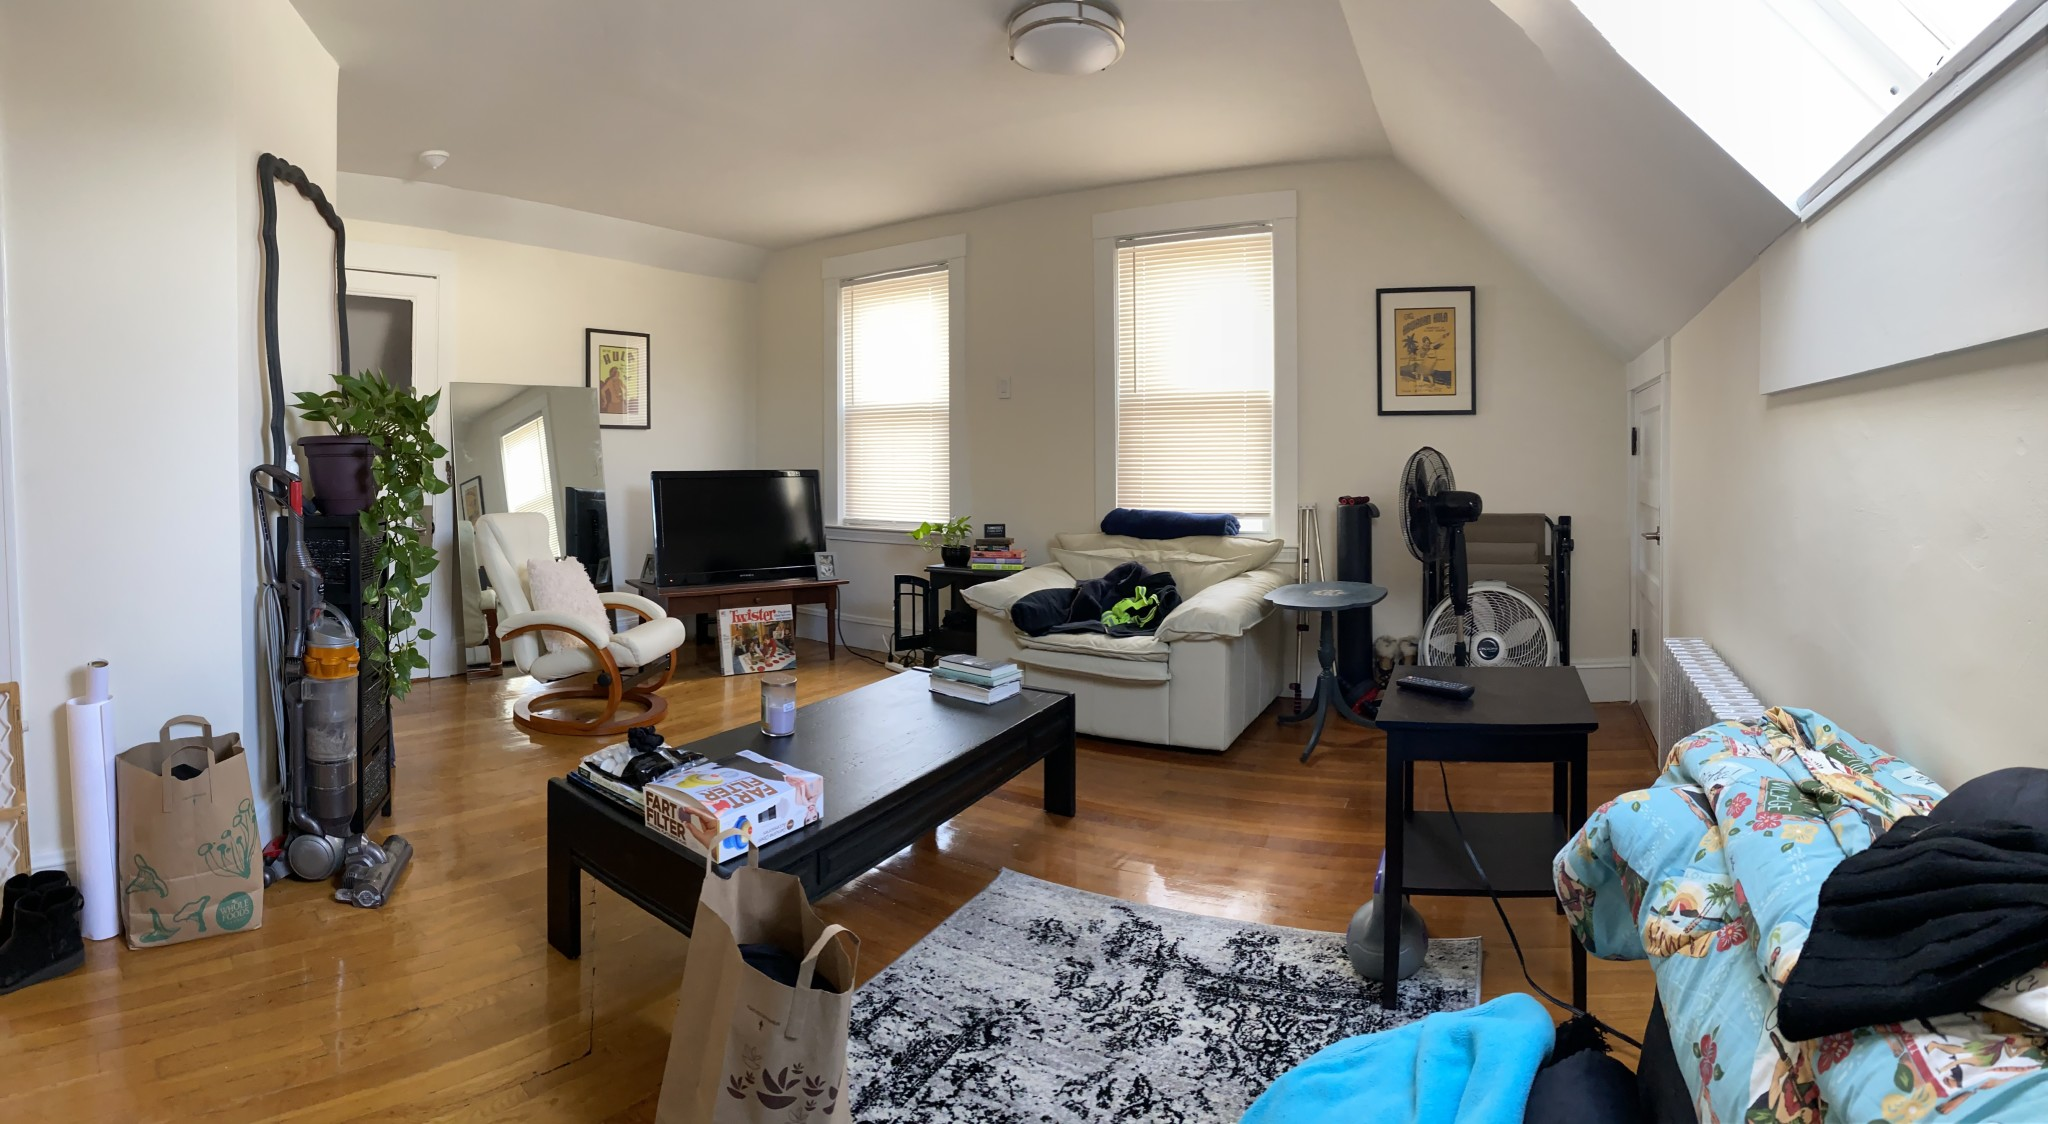 3 Beds, 1 Bath apartment in Somerville for $3,000